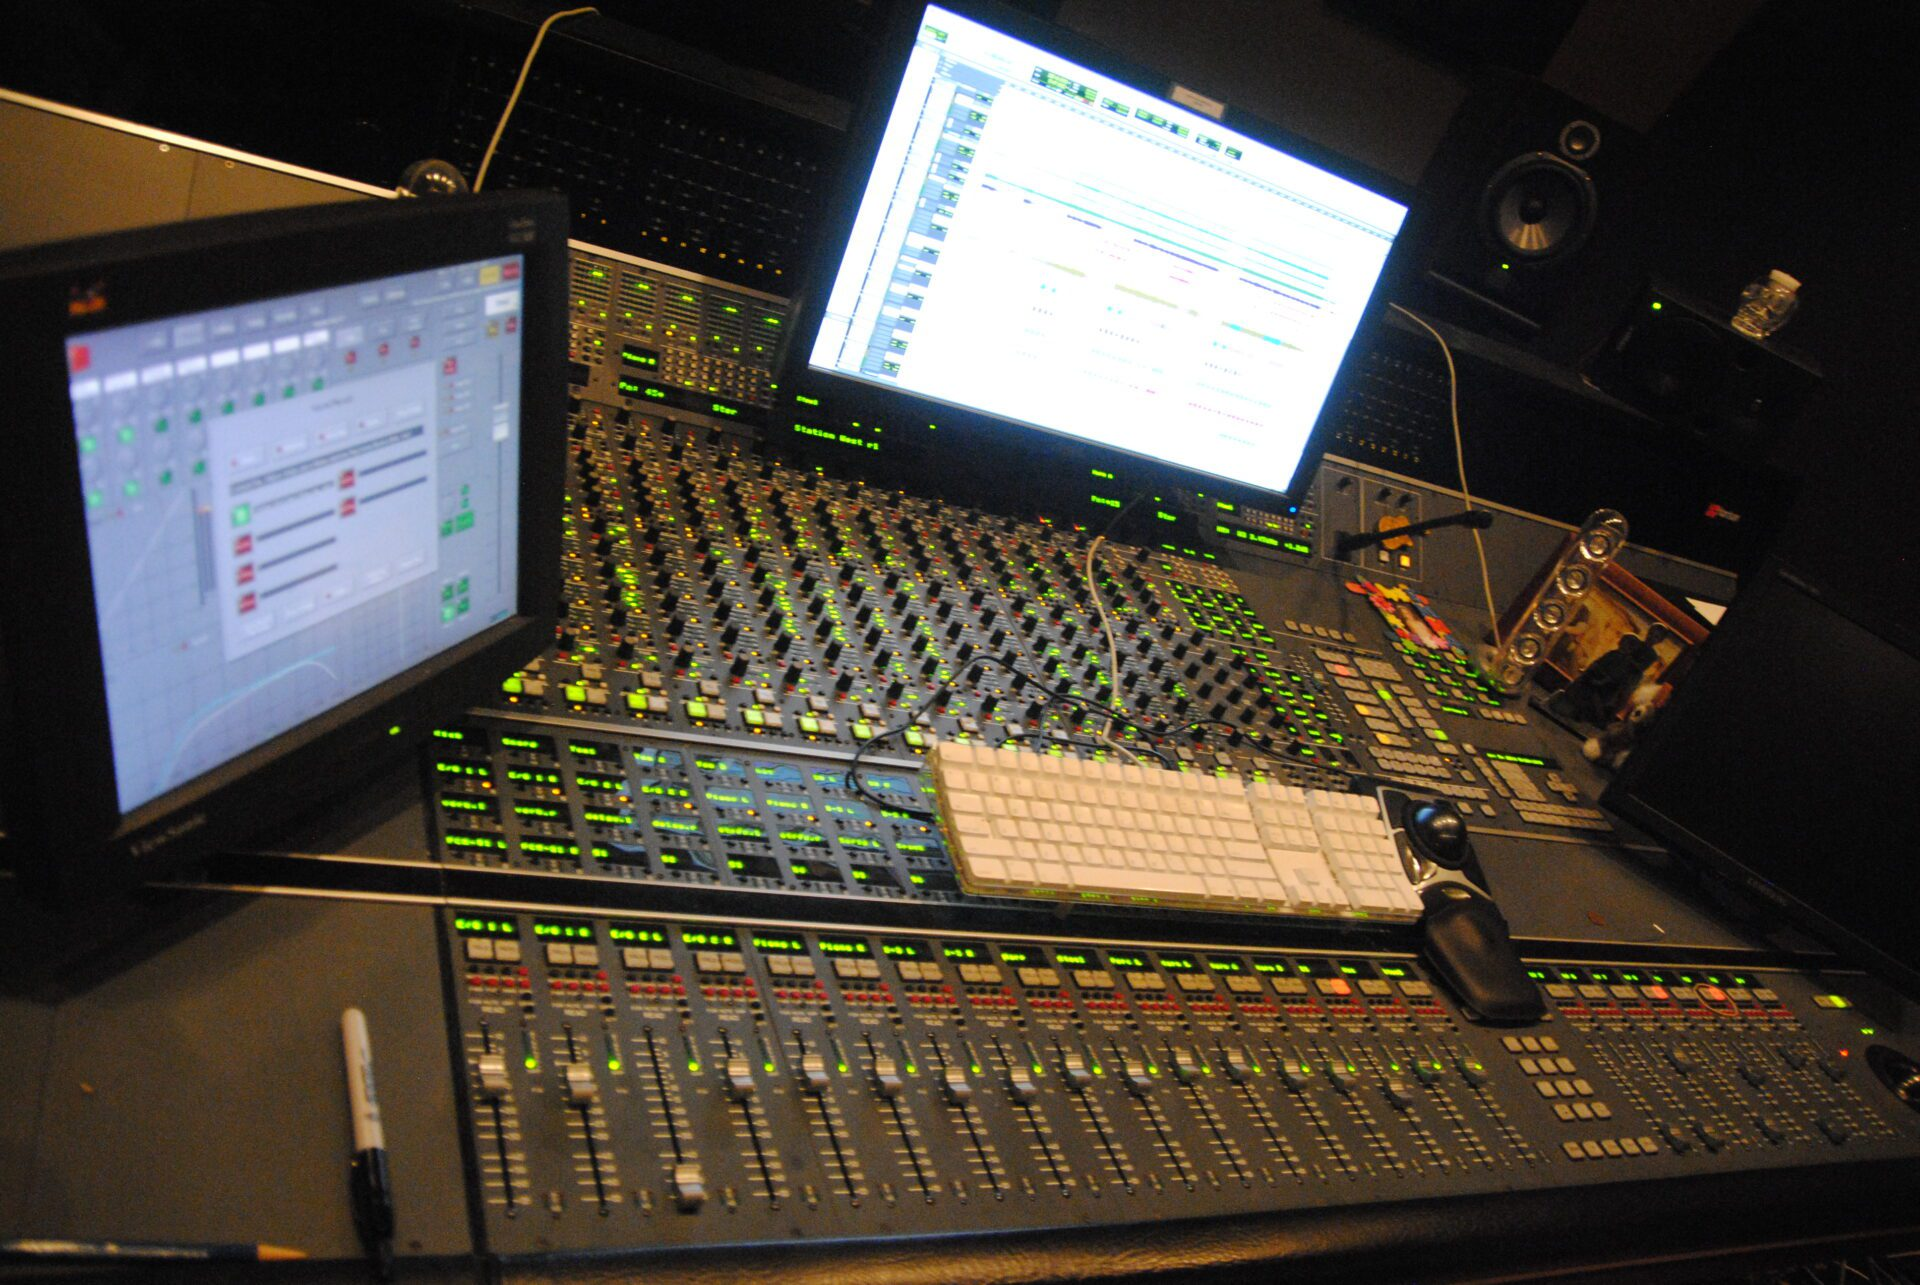 Station west series 12 2 for live and audio post production Nashville TN